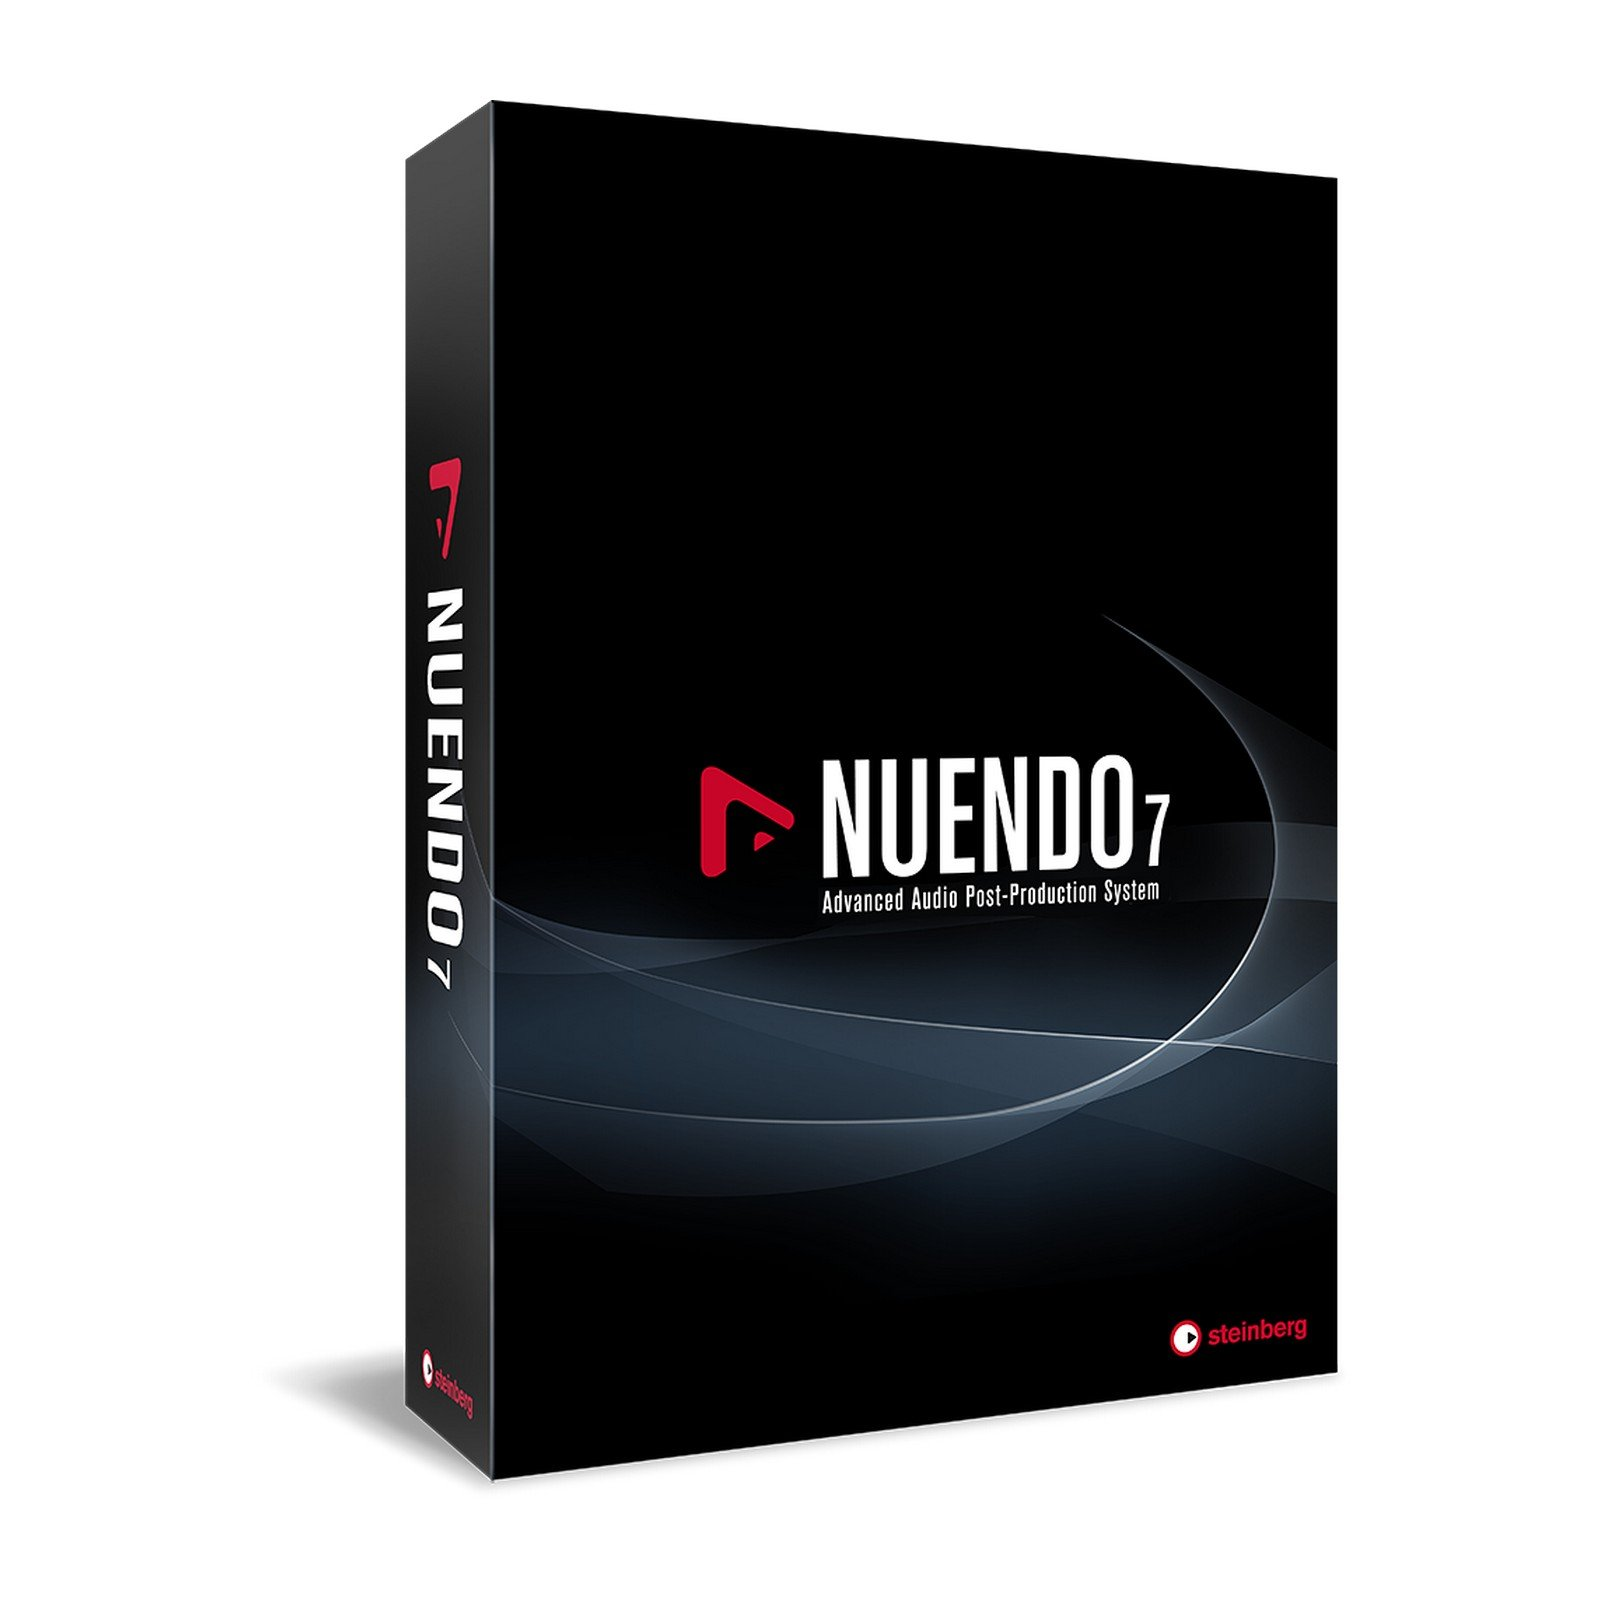 Steinberg Nuendo 7 Advanced Audio Post-Production System (Boxed Version) by Steinberg